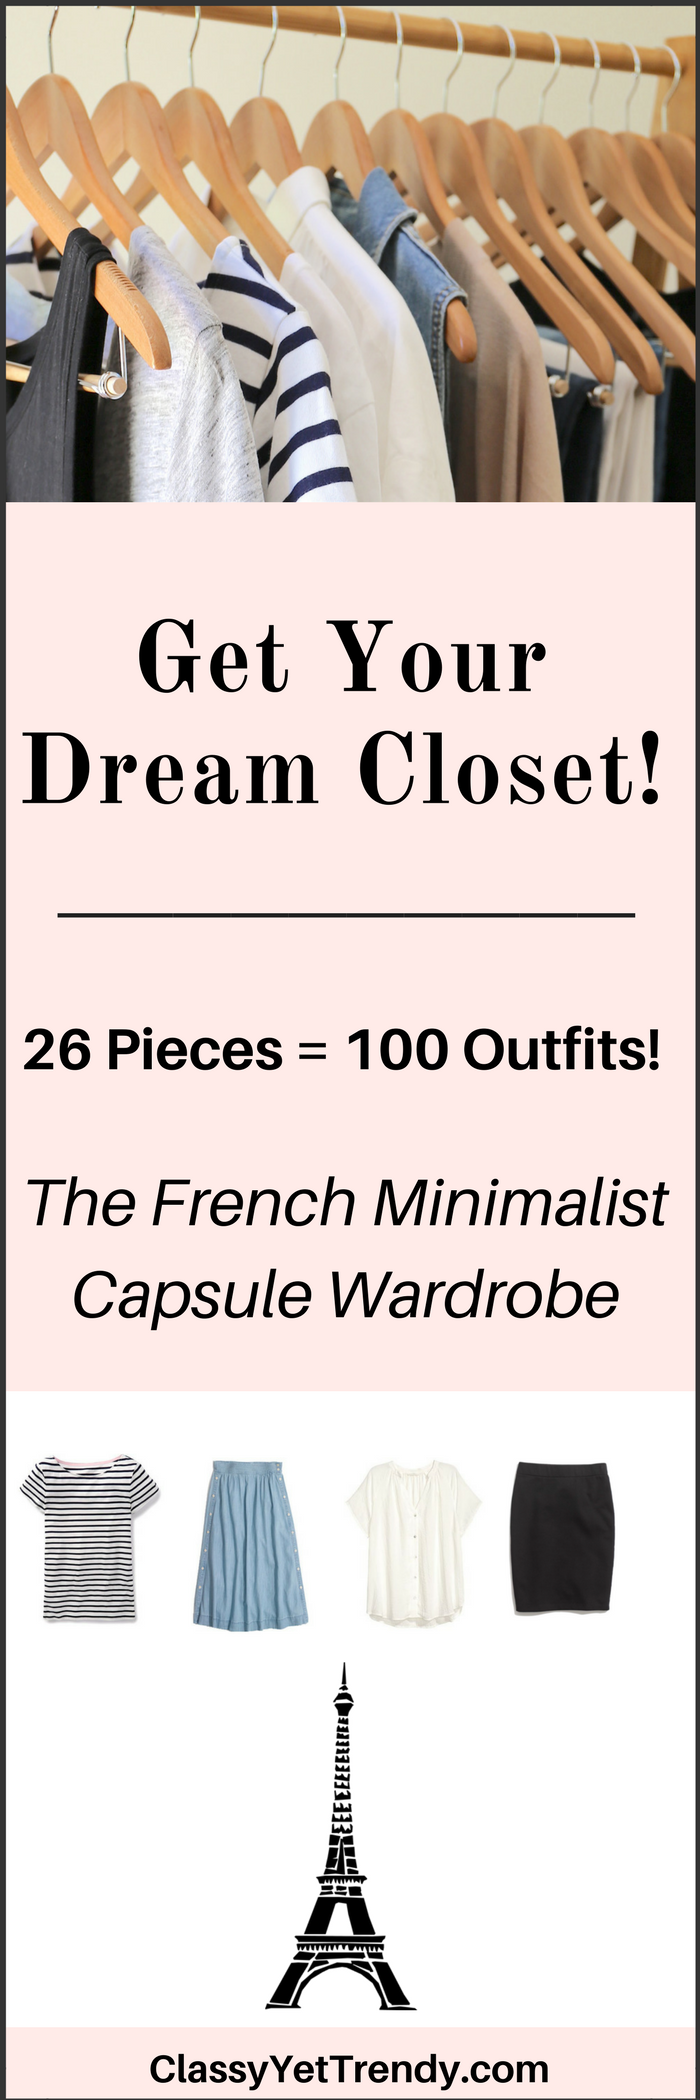 The French Minimalist Capsule Wardrobe: Summer 2017